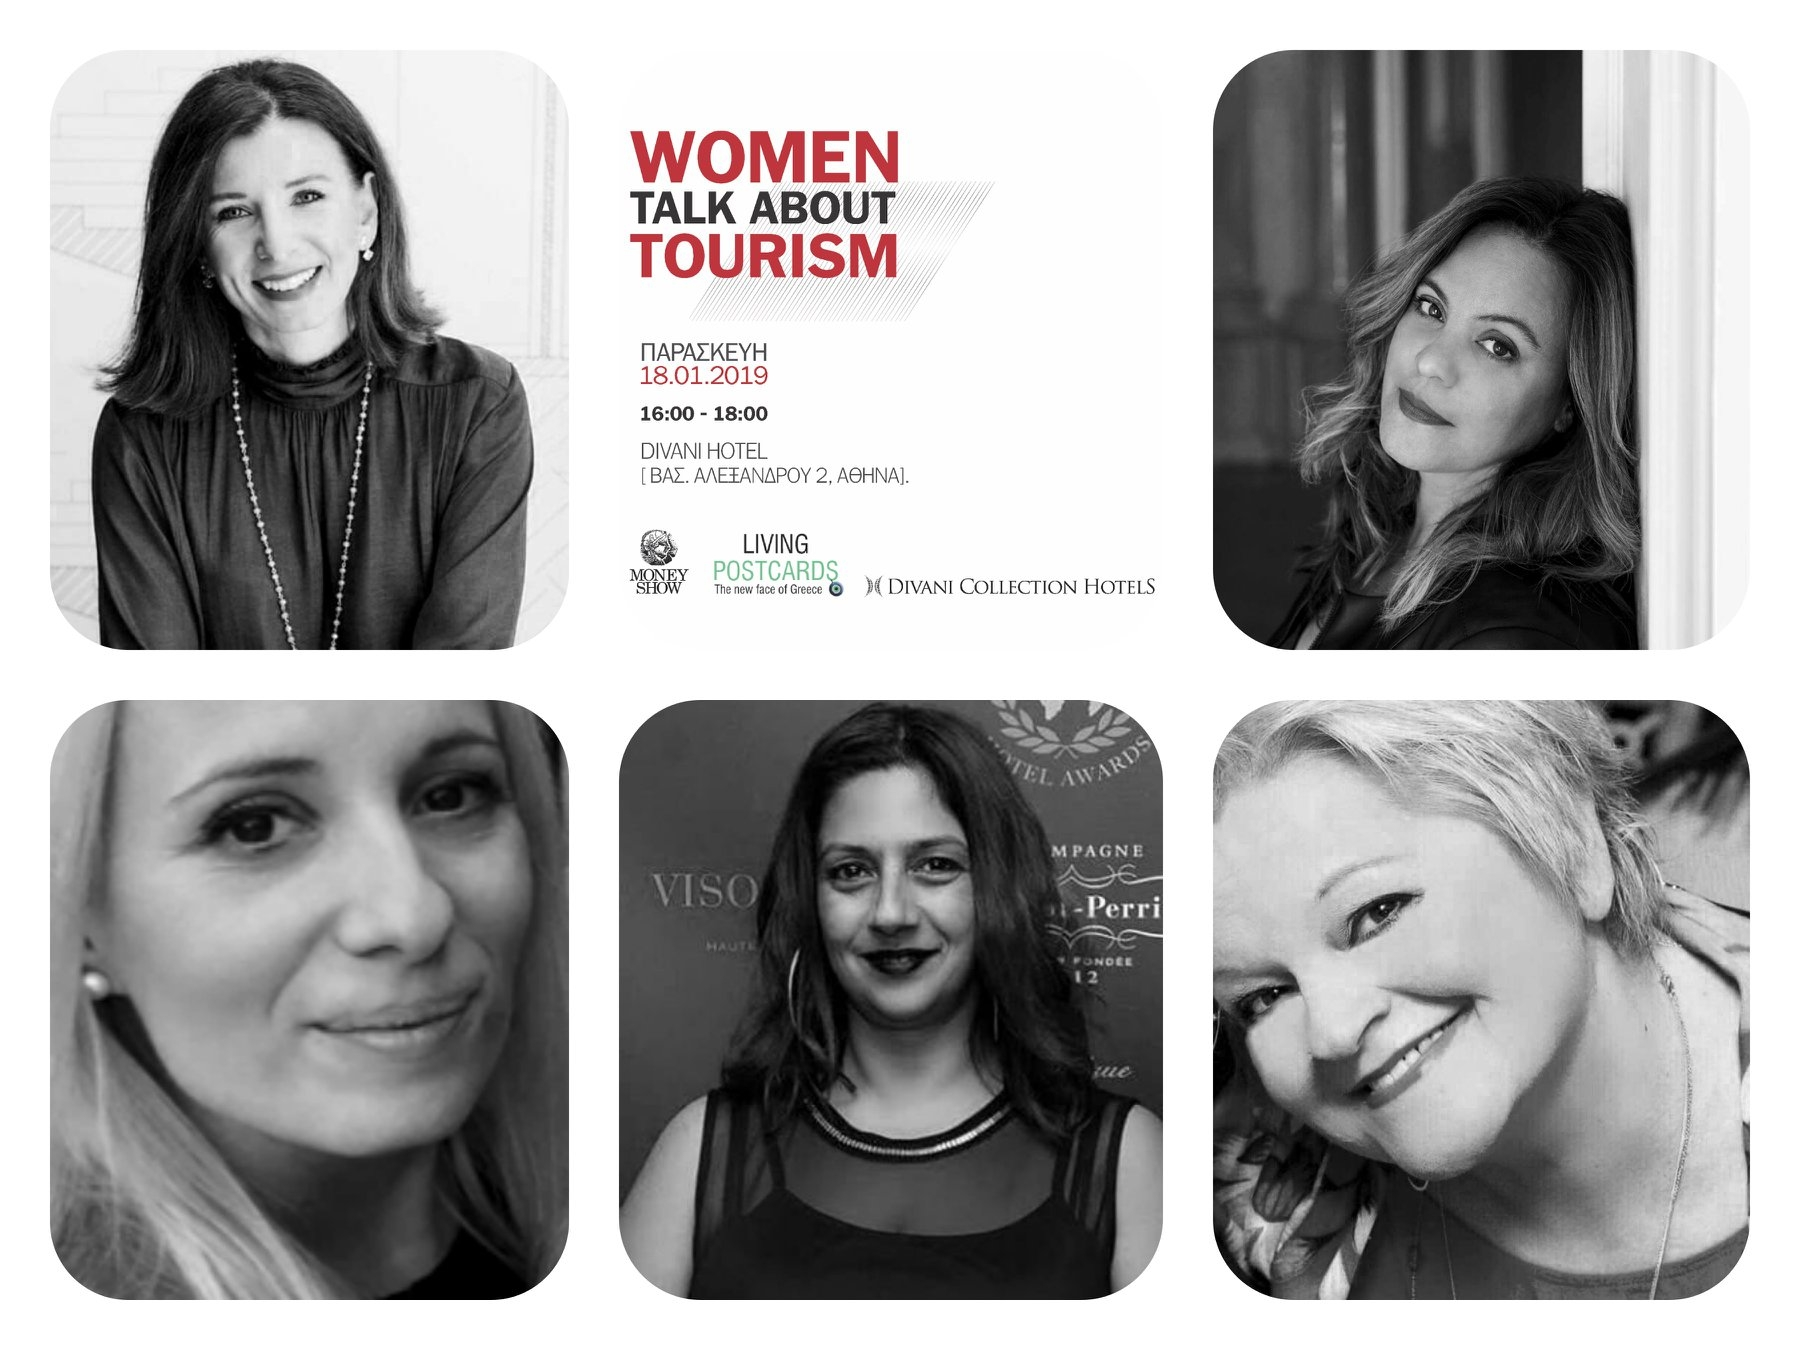 #Women_talk_about_tourism